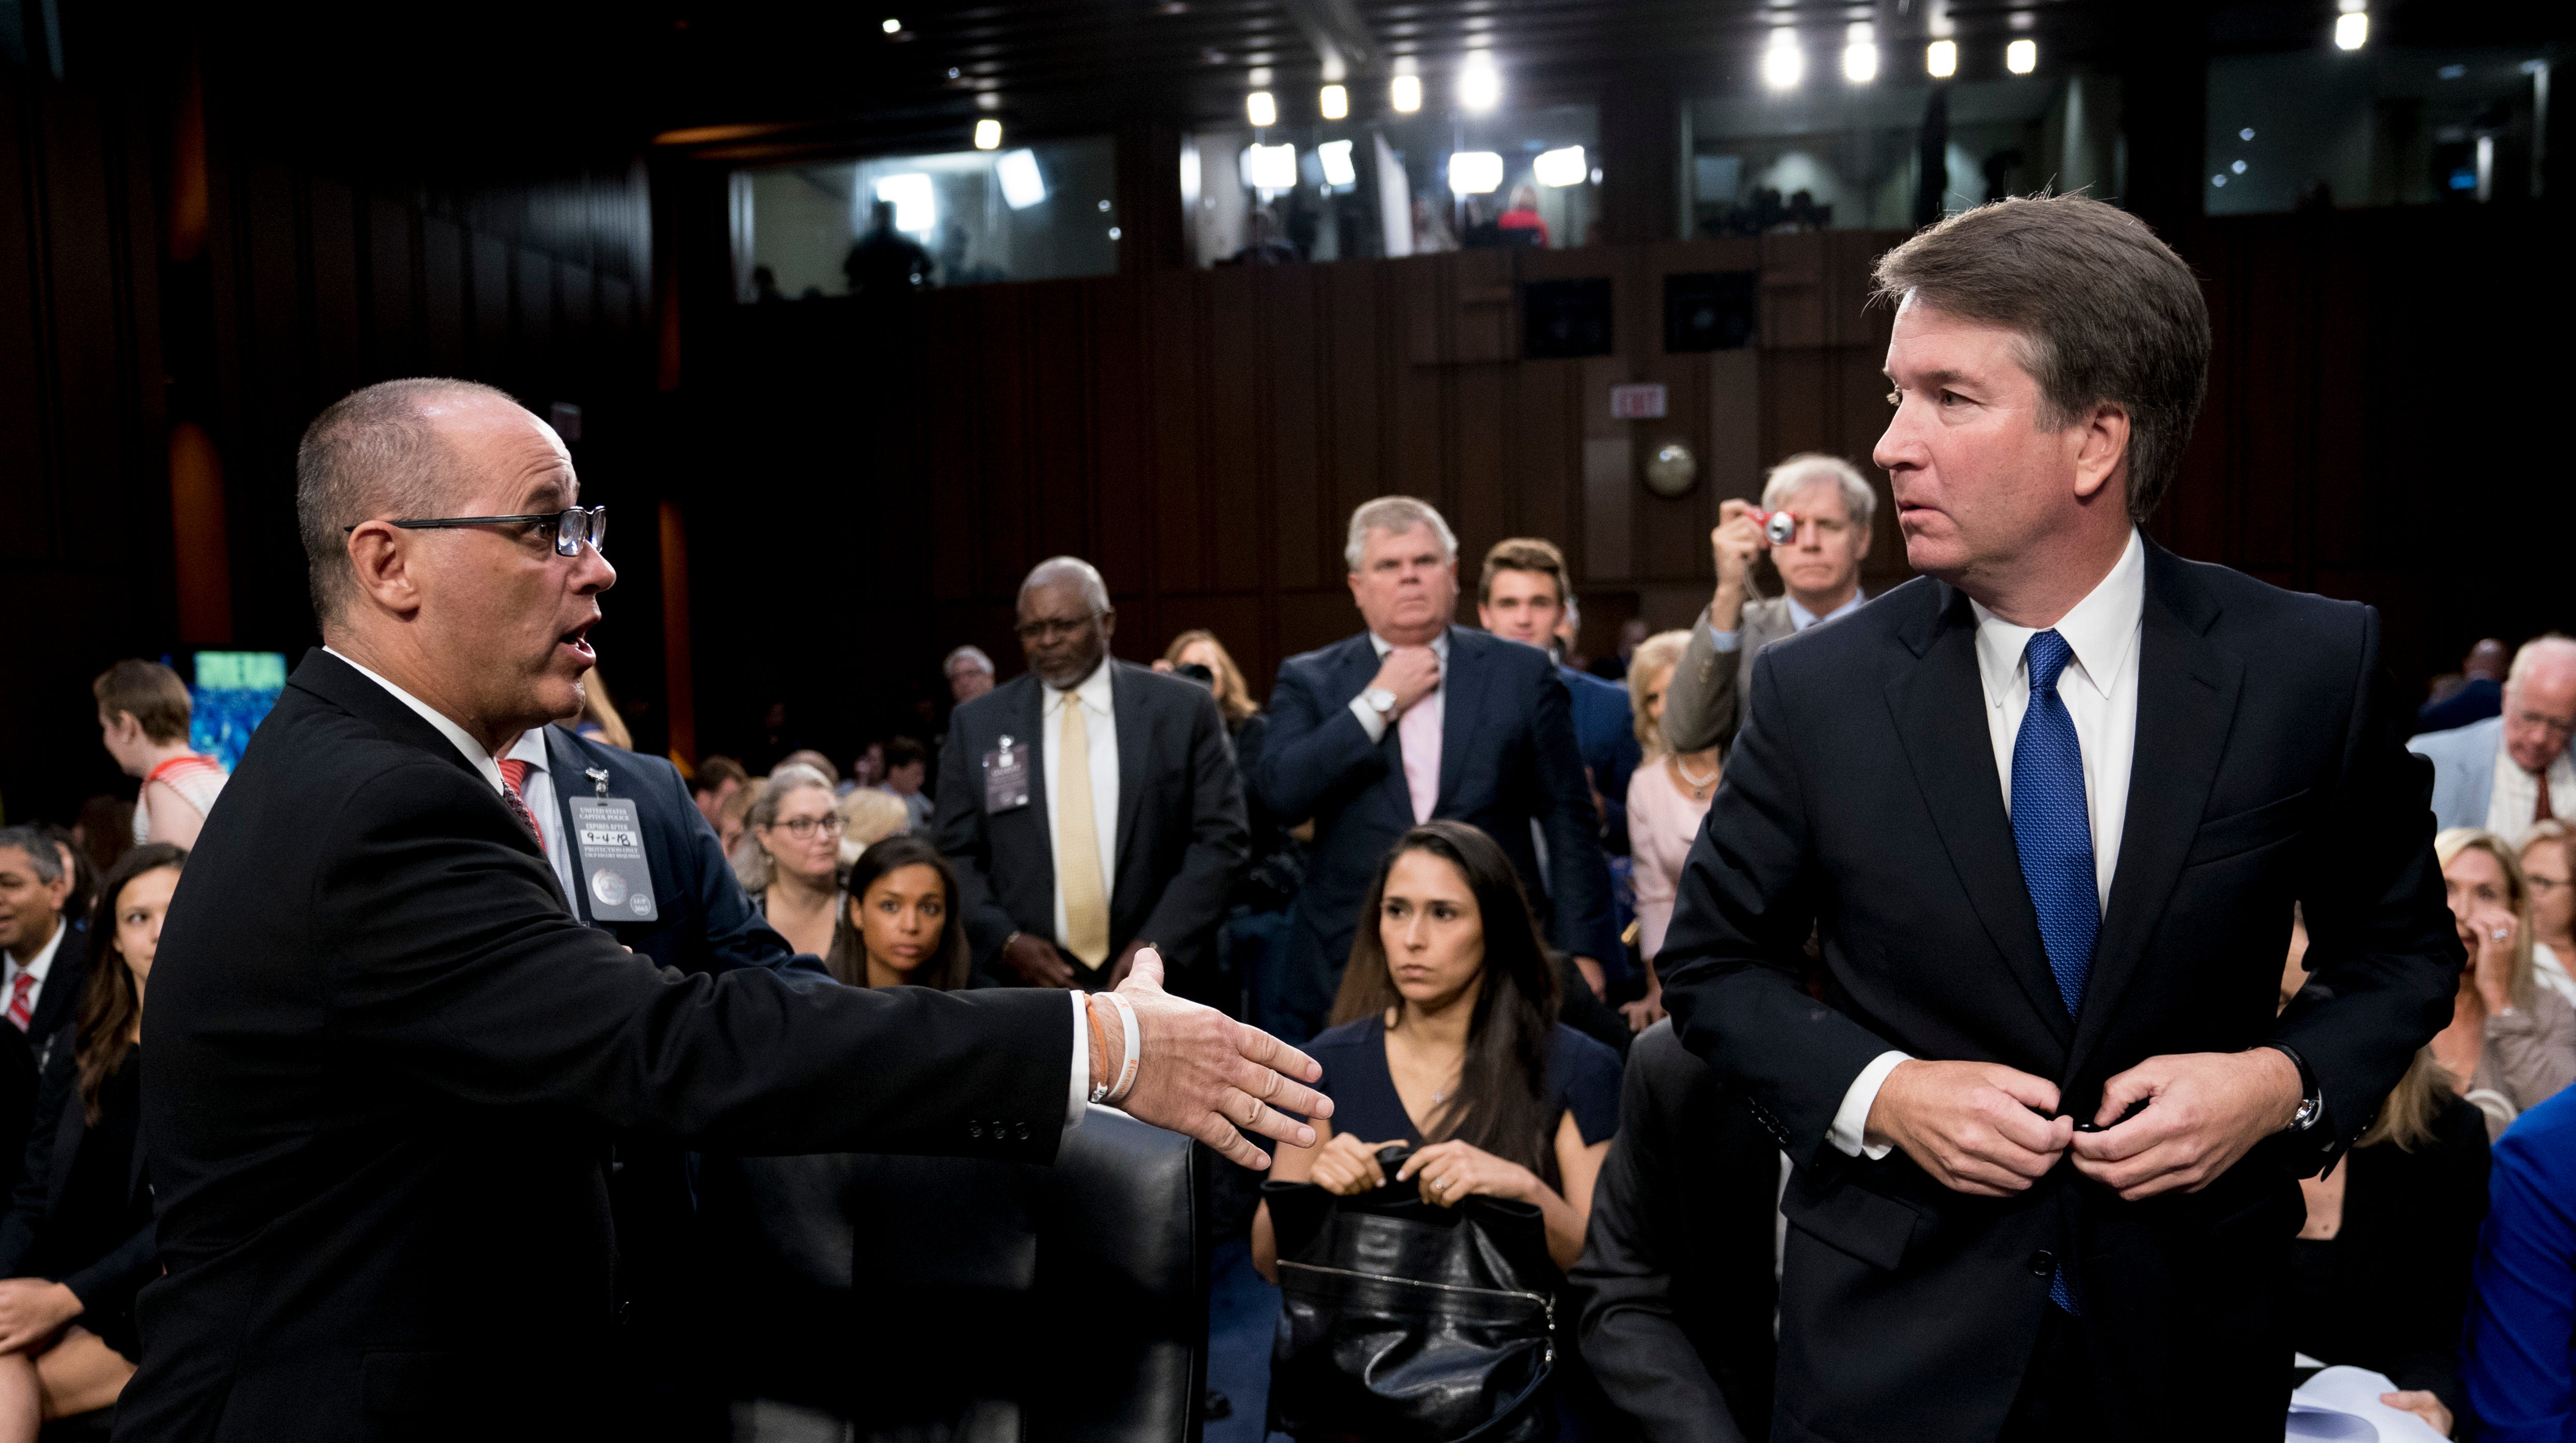 Brett Kavanaugh confirmation hearings: Return to nonpartisan vetting of Supreme Court nominees | Opinion